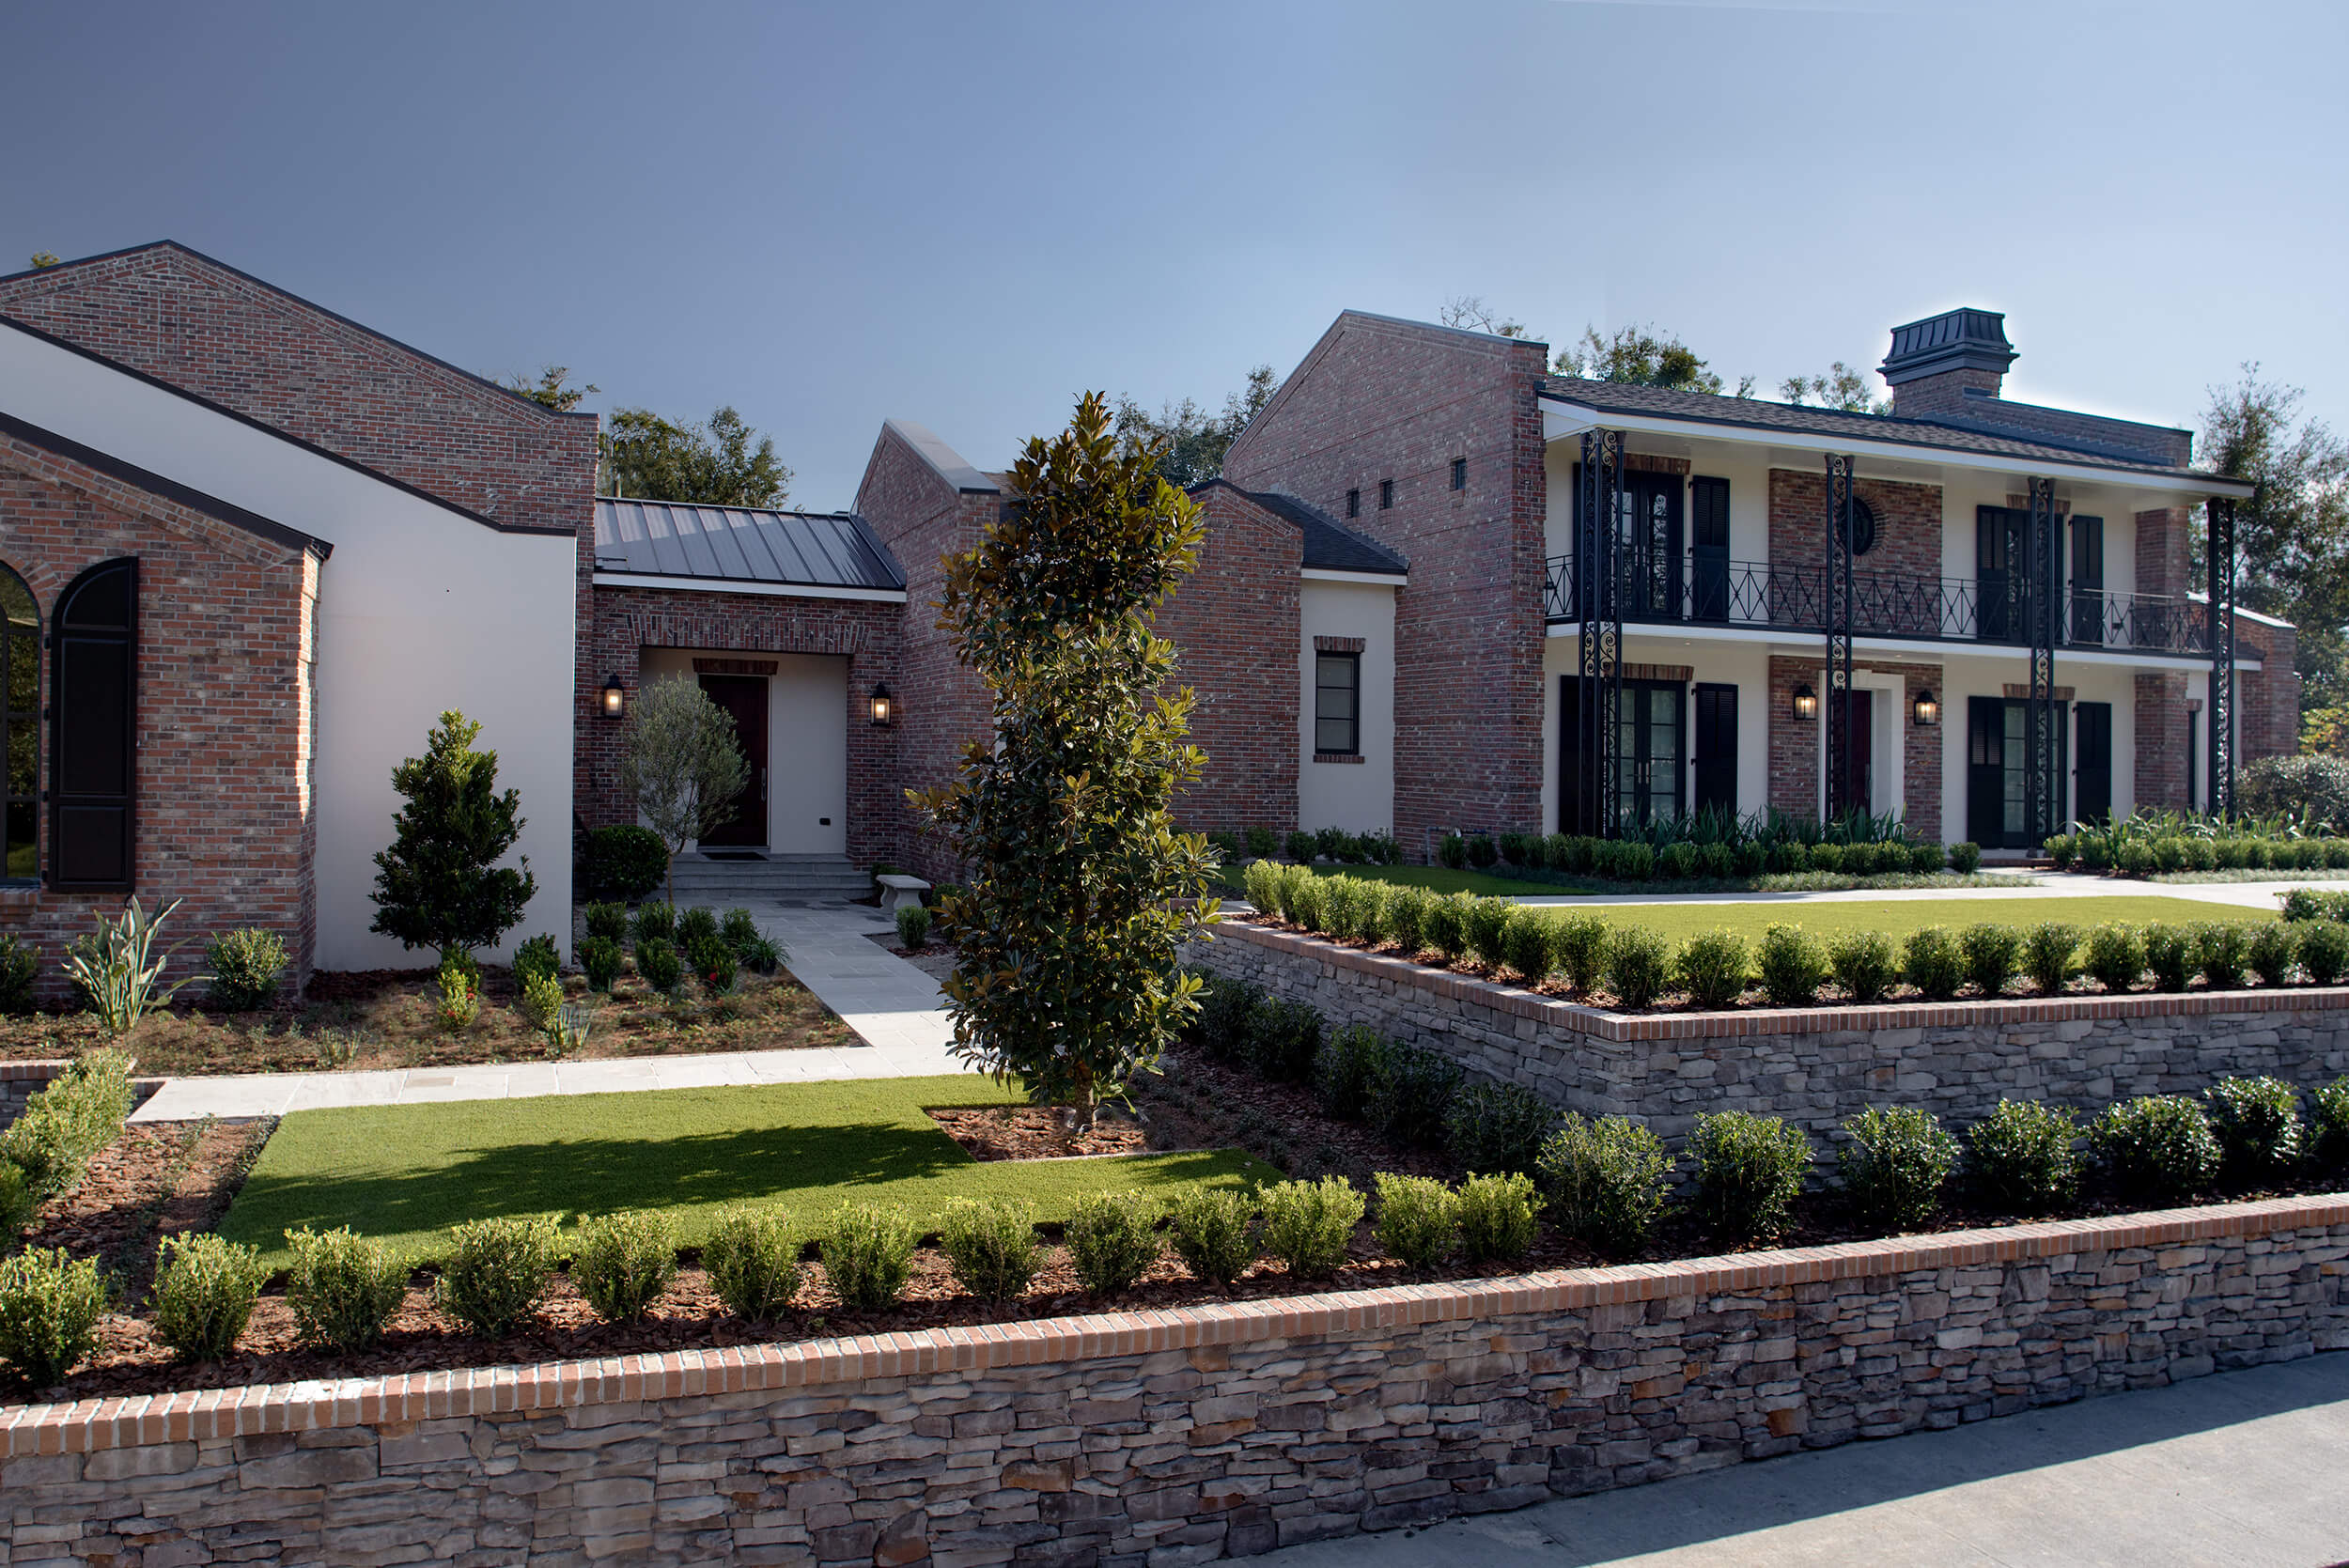 The New American Remodel